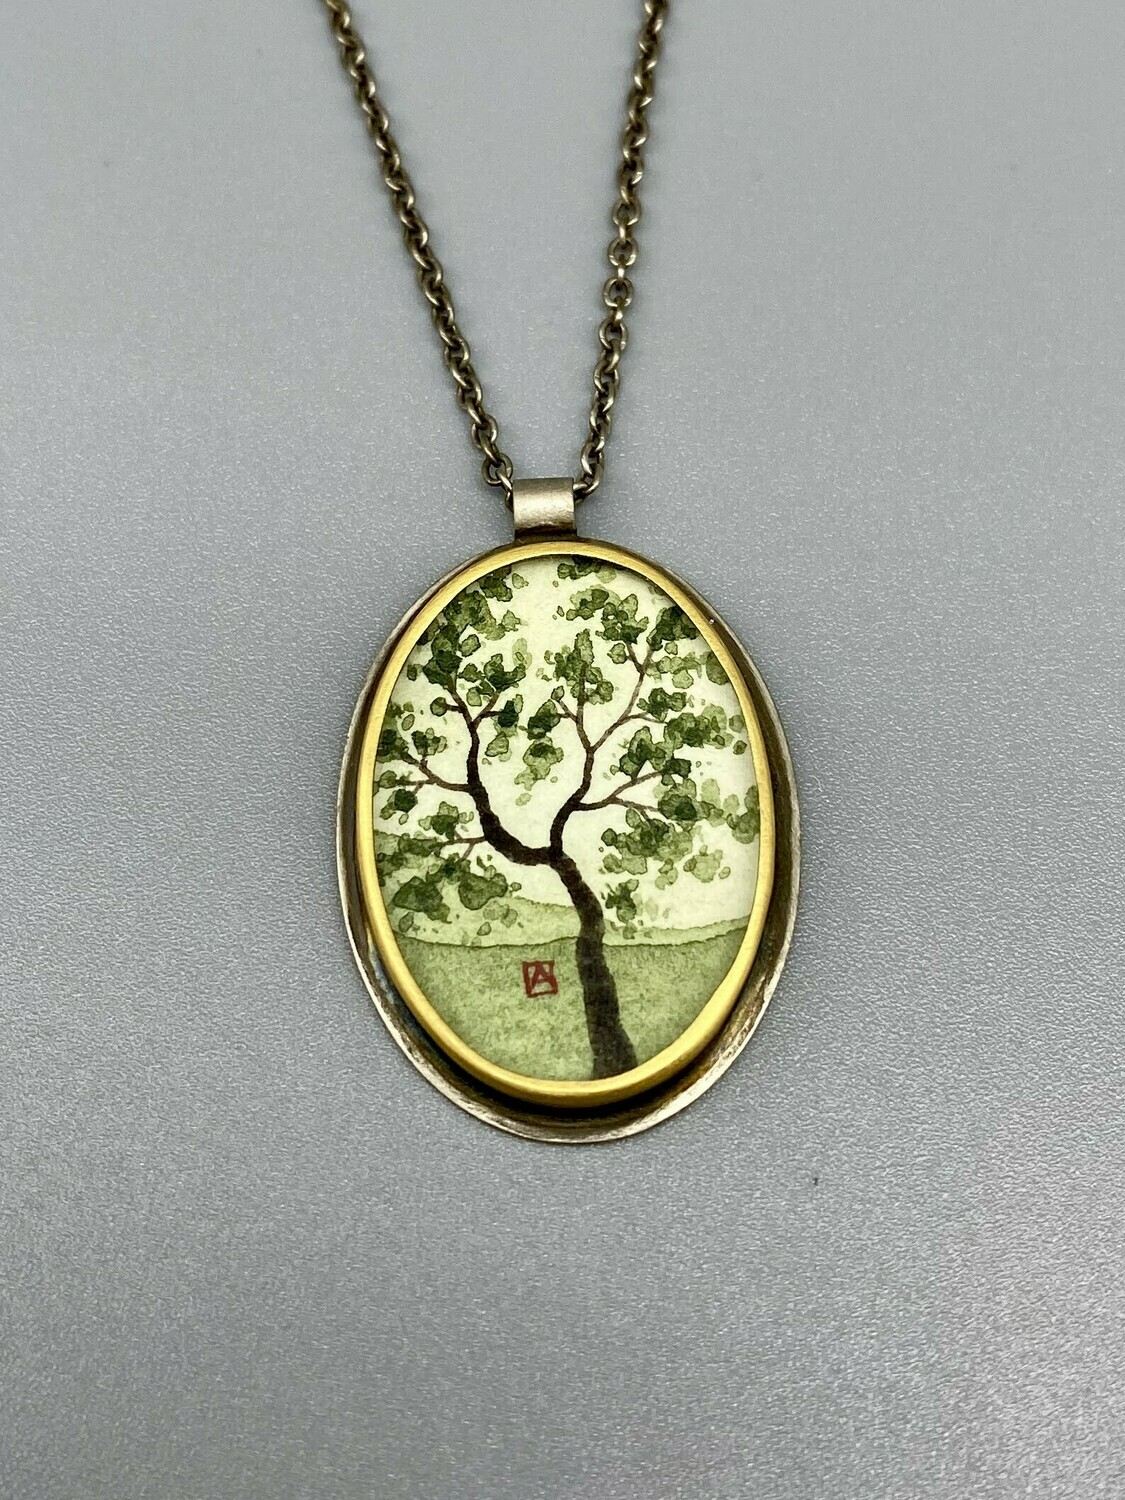 Hand Painted Spring Maple Oval Necklace, 22k Bezel and Sterling Silver  - Ananda Khalsa - Northampton MA